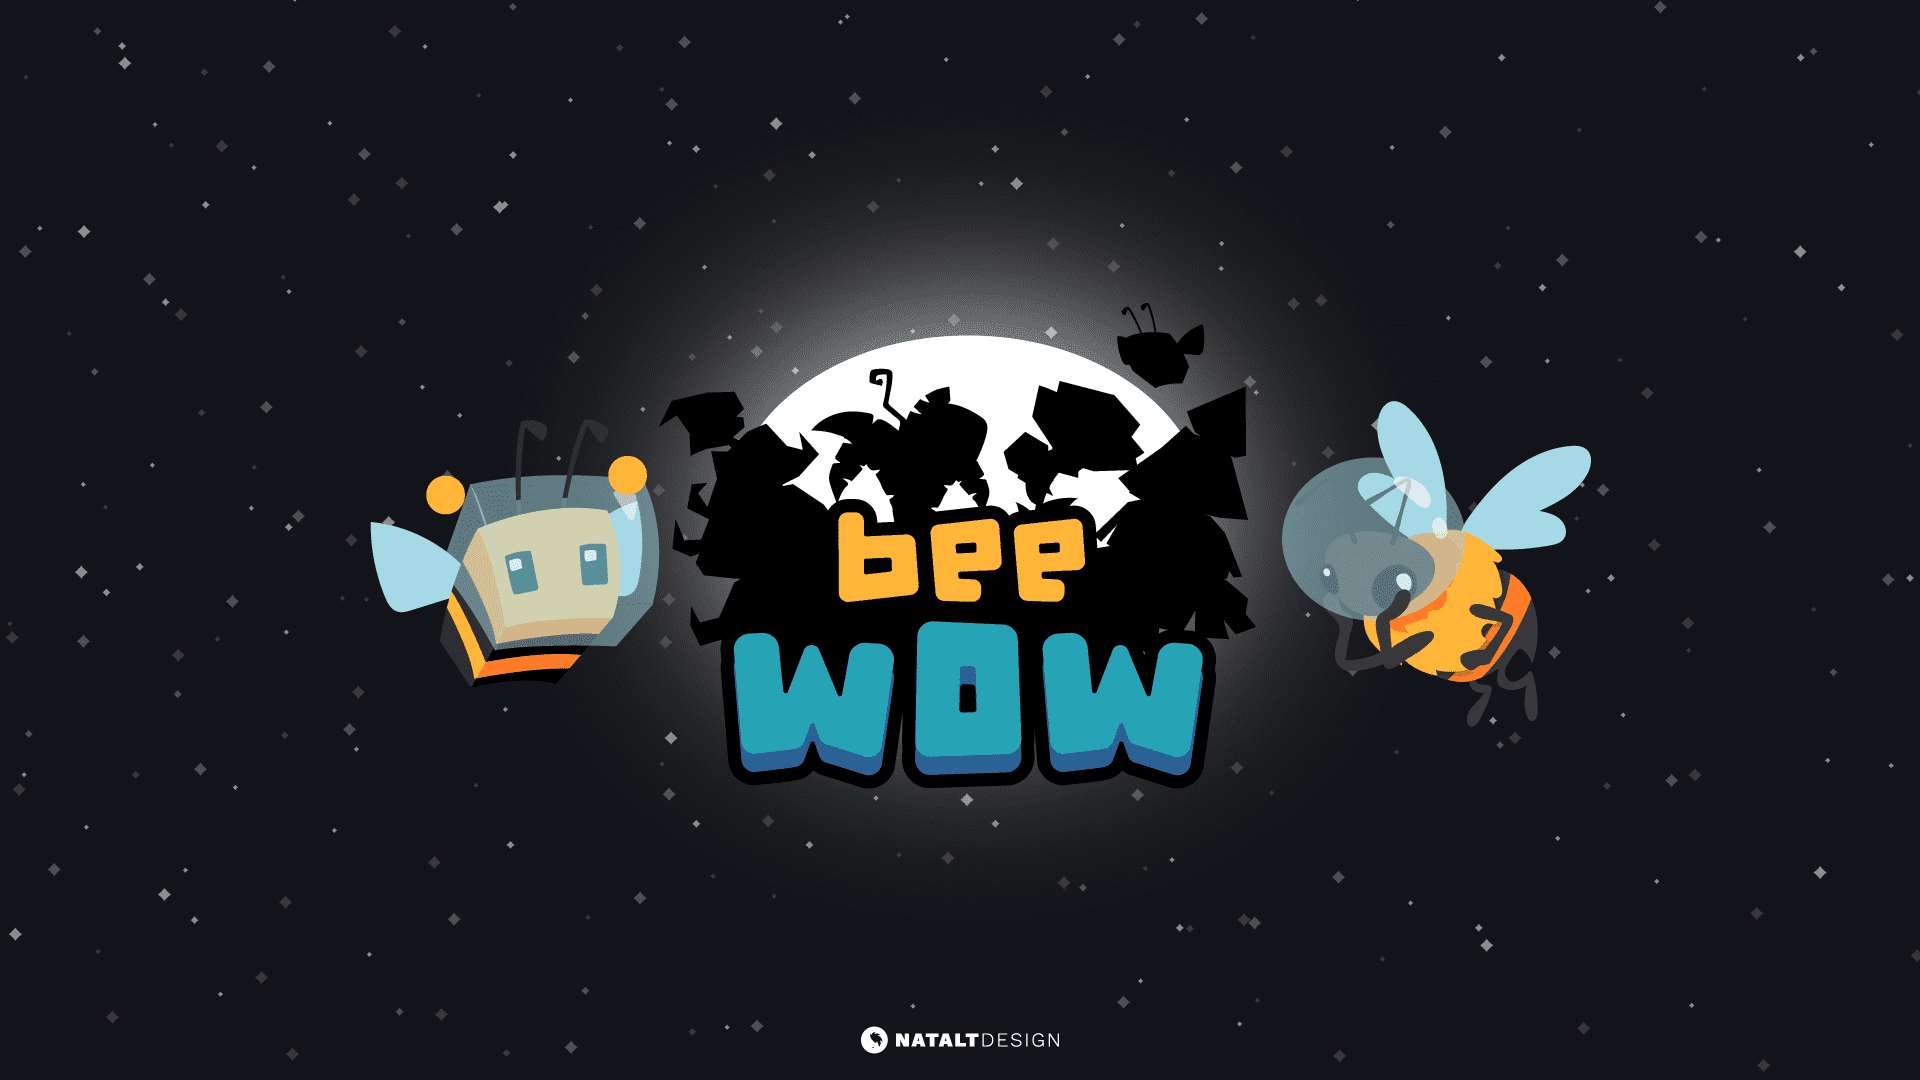 Bee Wow logo design